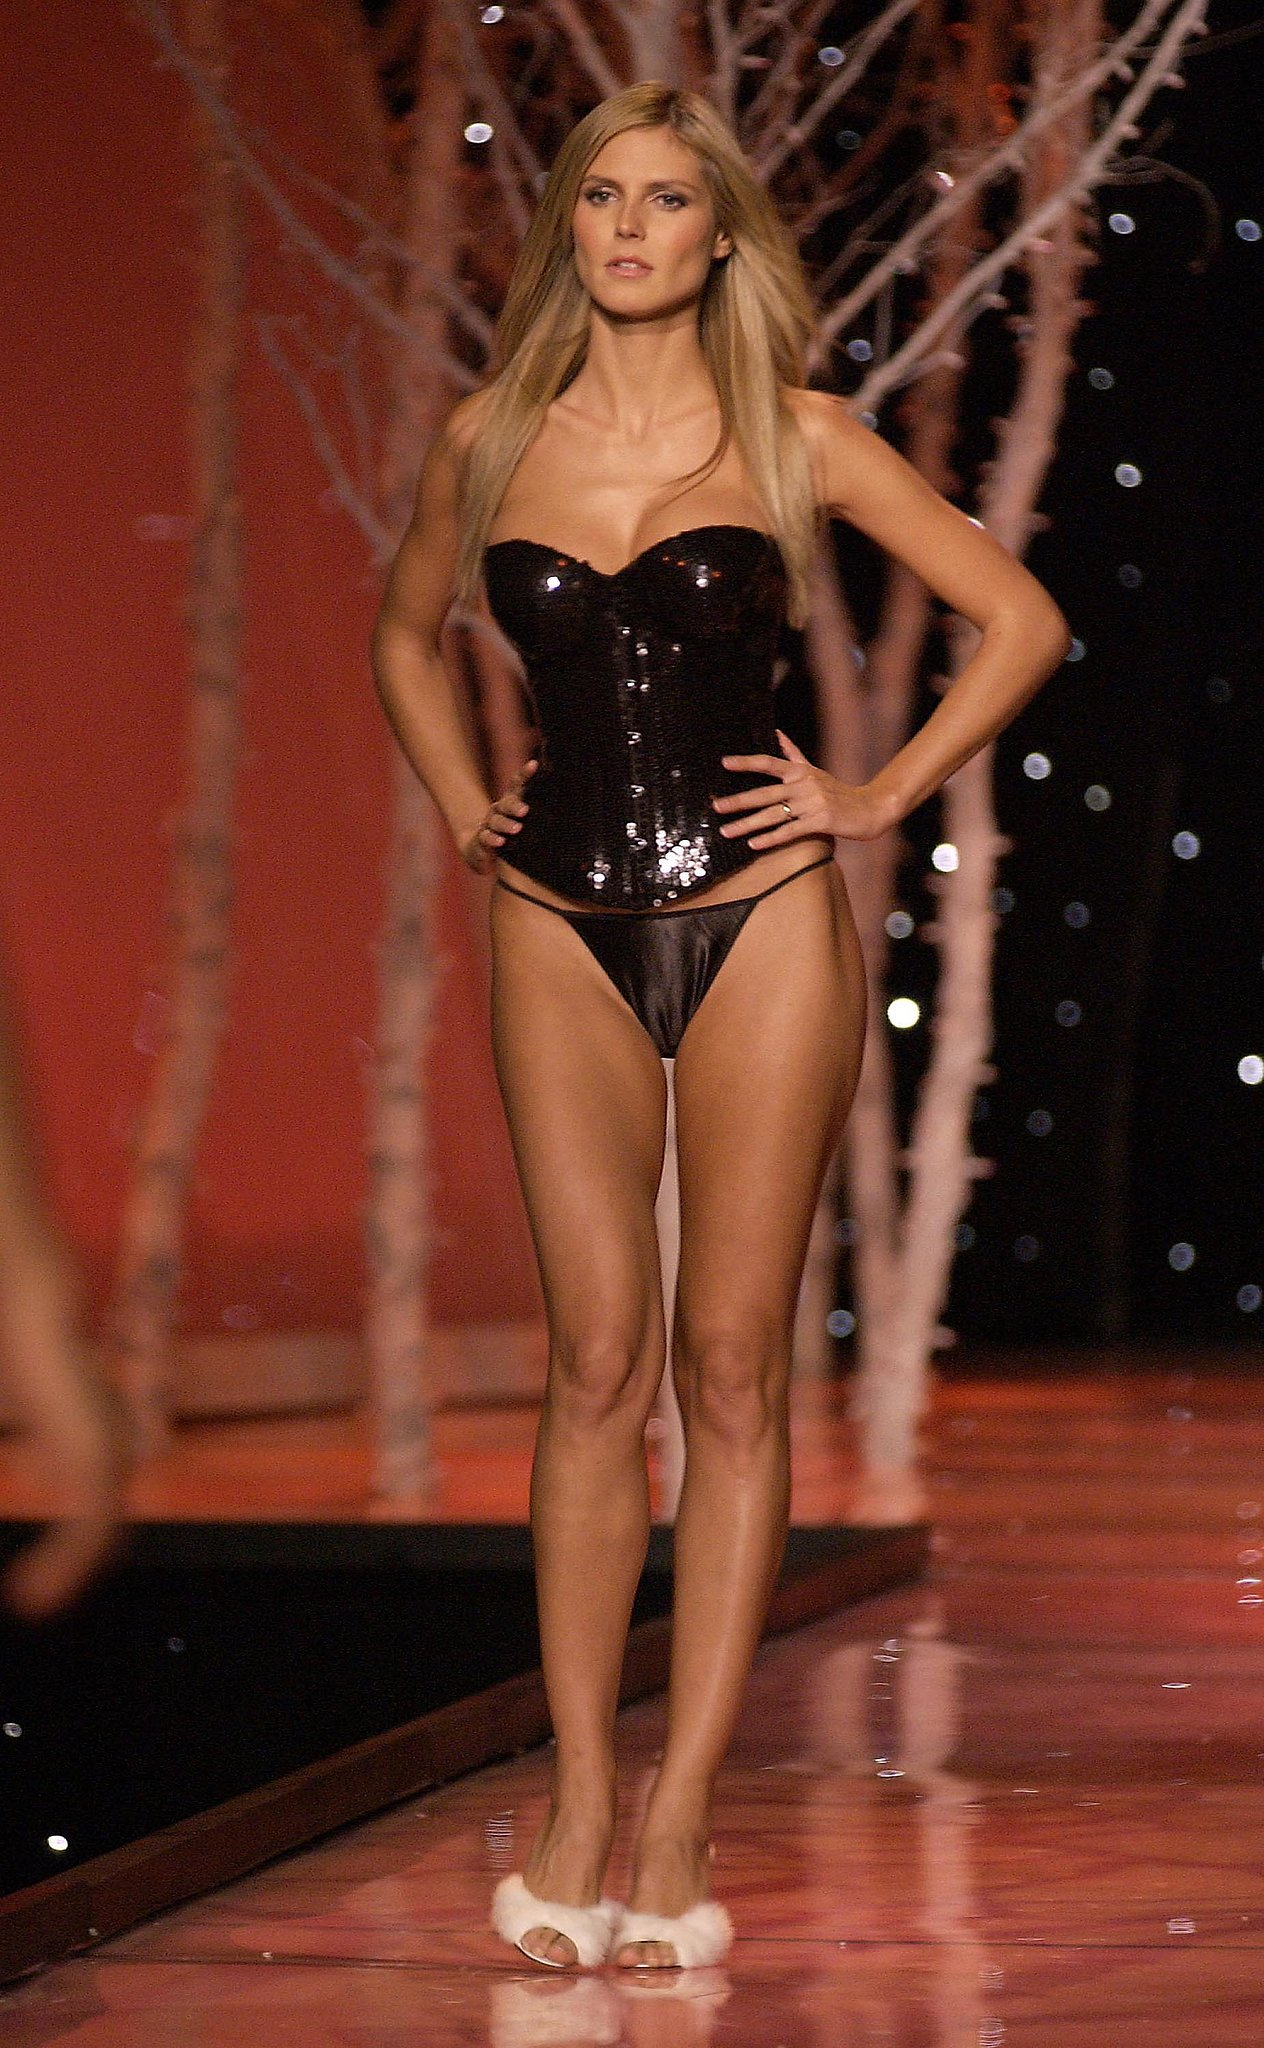 Heidi donned a black sequined corset in 2001.